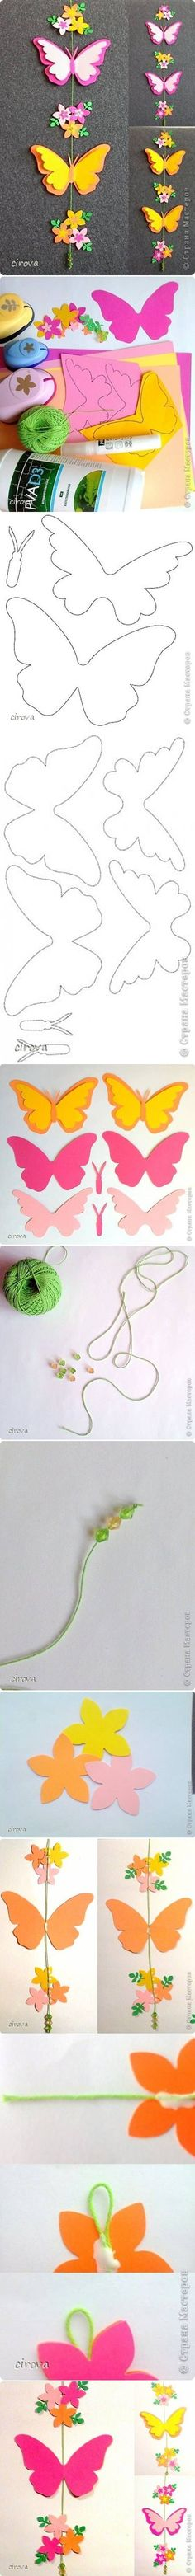 Ideas Origami Papillon Guirlande For 2019 Diy Paper, Paper Crafting, Paper Art, Butterfly Mobile, Butterfly Crafts, Origami Butterfly, Butterfly Pendant, Butterfly Ornaments, Butterfly Wall